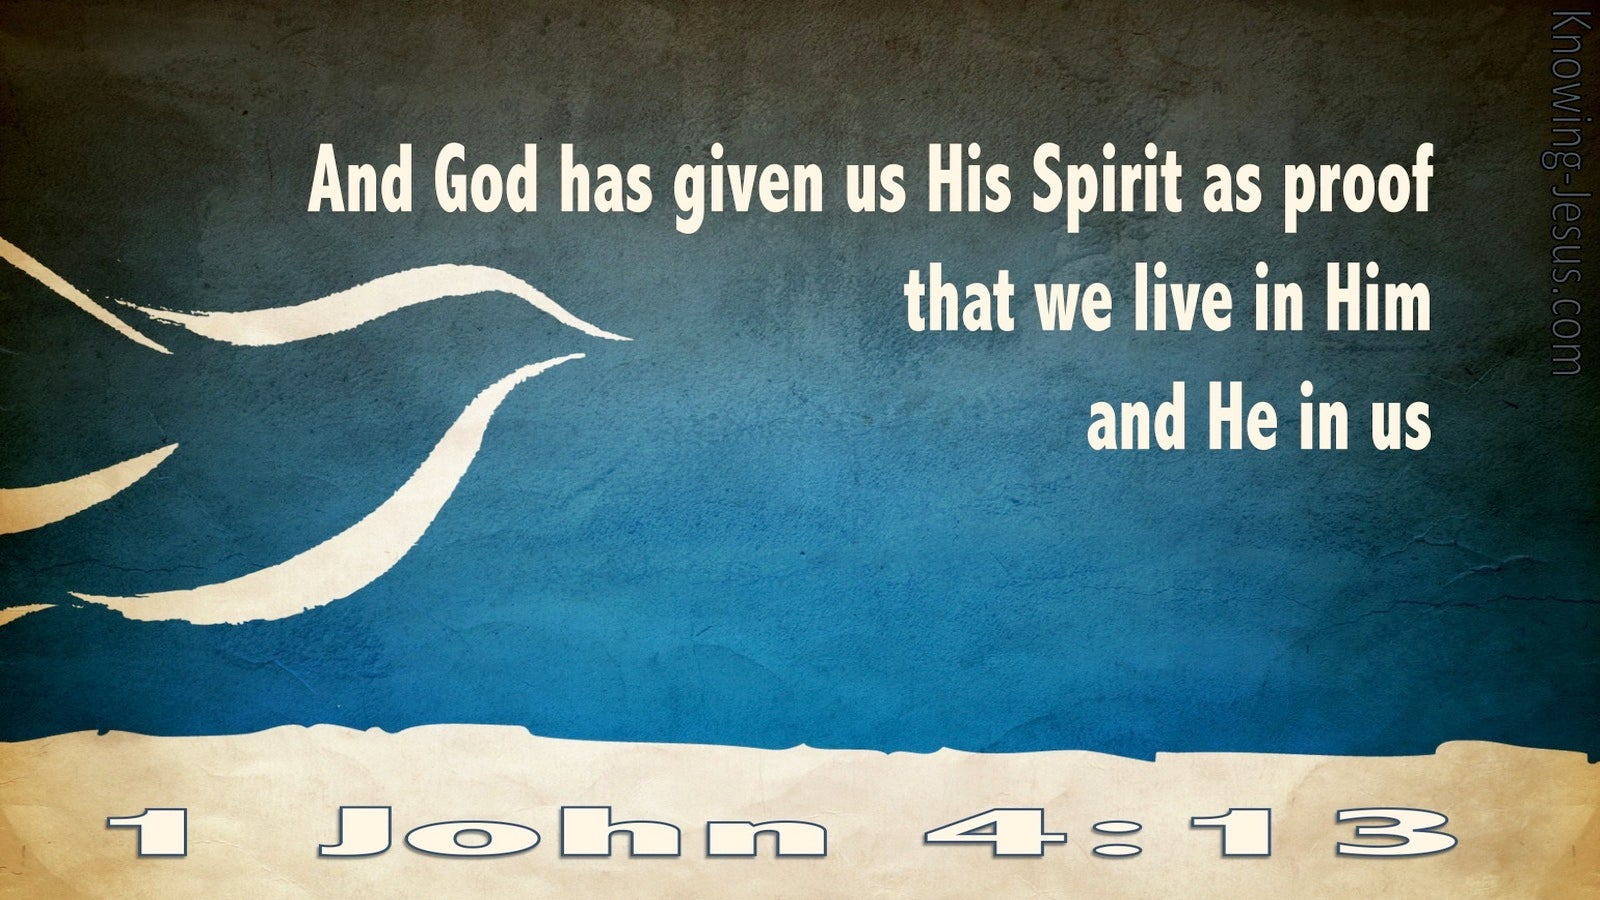 1 John 4:13 God Has Given Us His Spirit As Proof (blue)